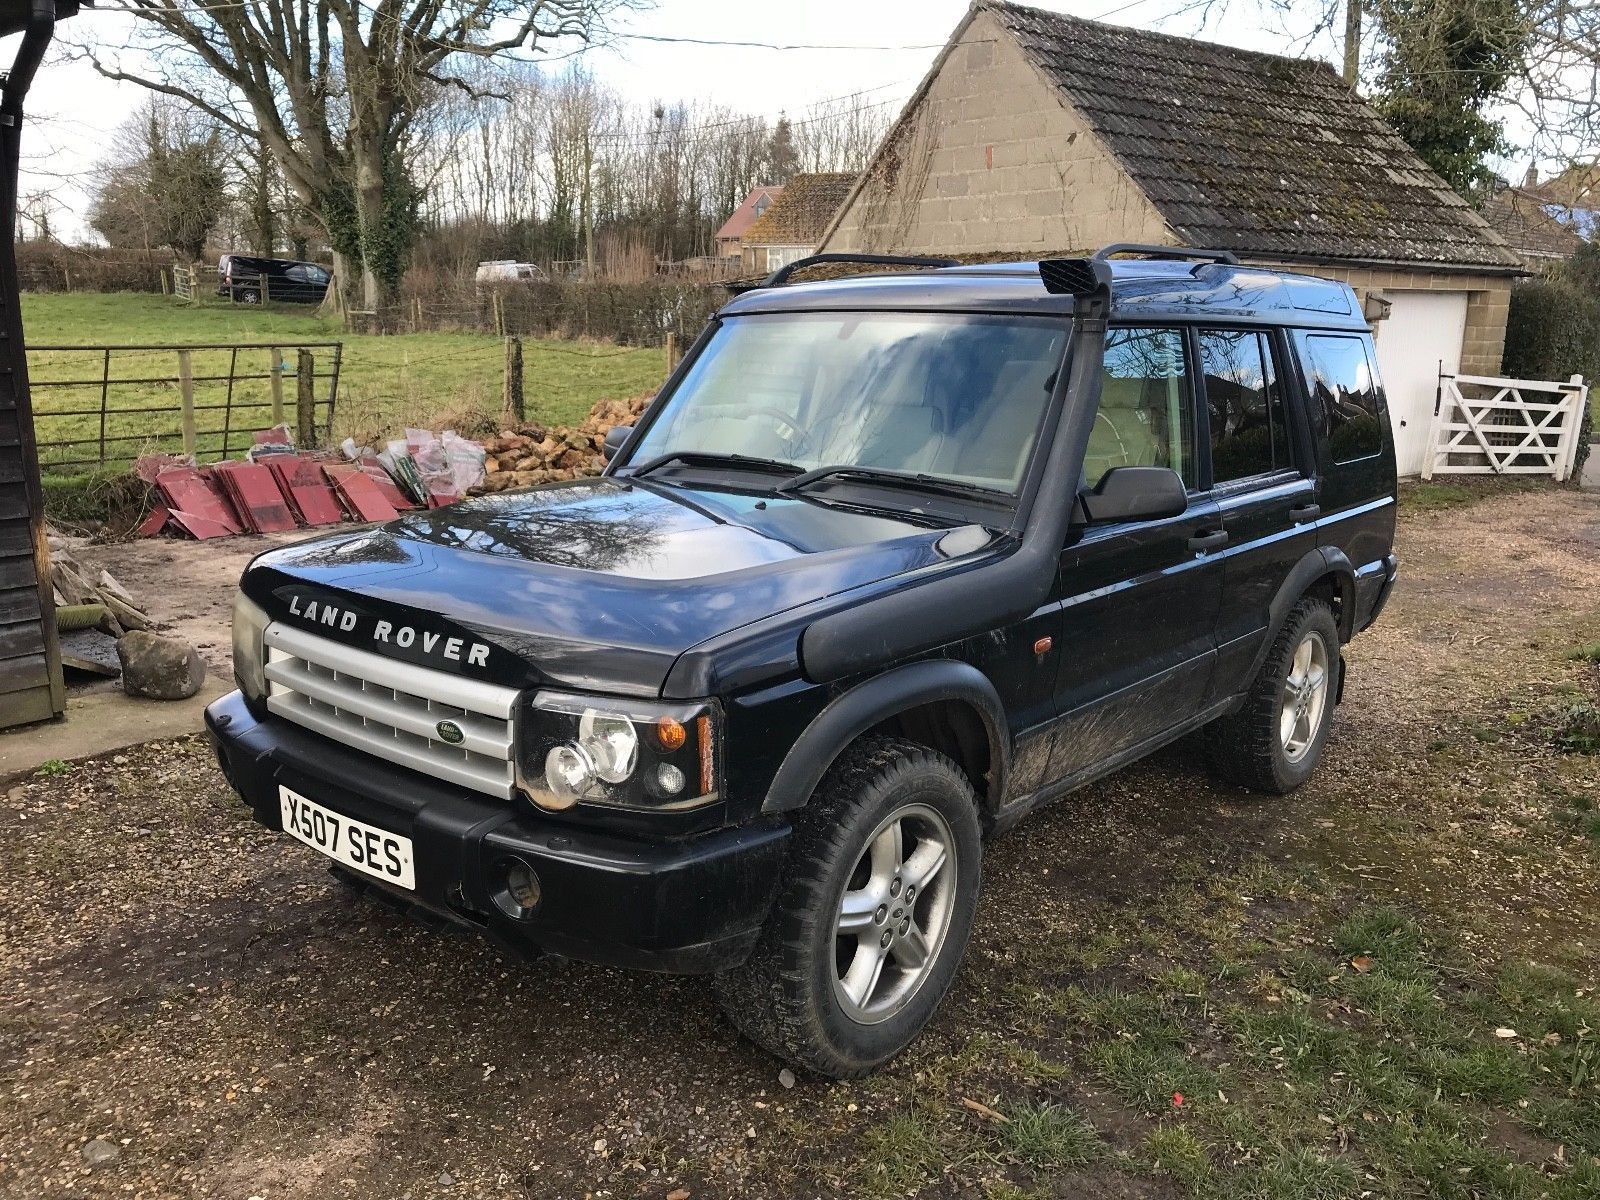 eBay: Land Rover Discovery 2 ES TD5 2001 Black 99k Miles manual - Spares or